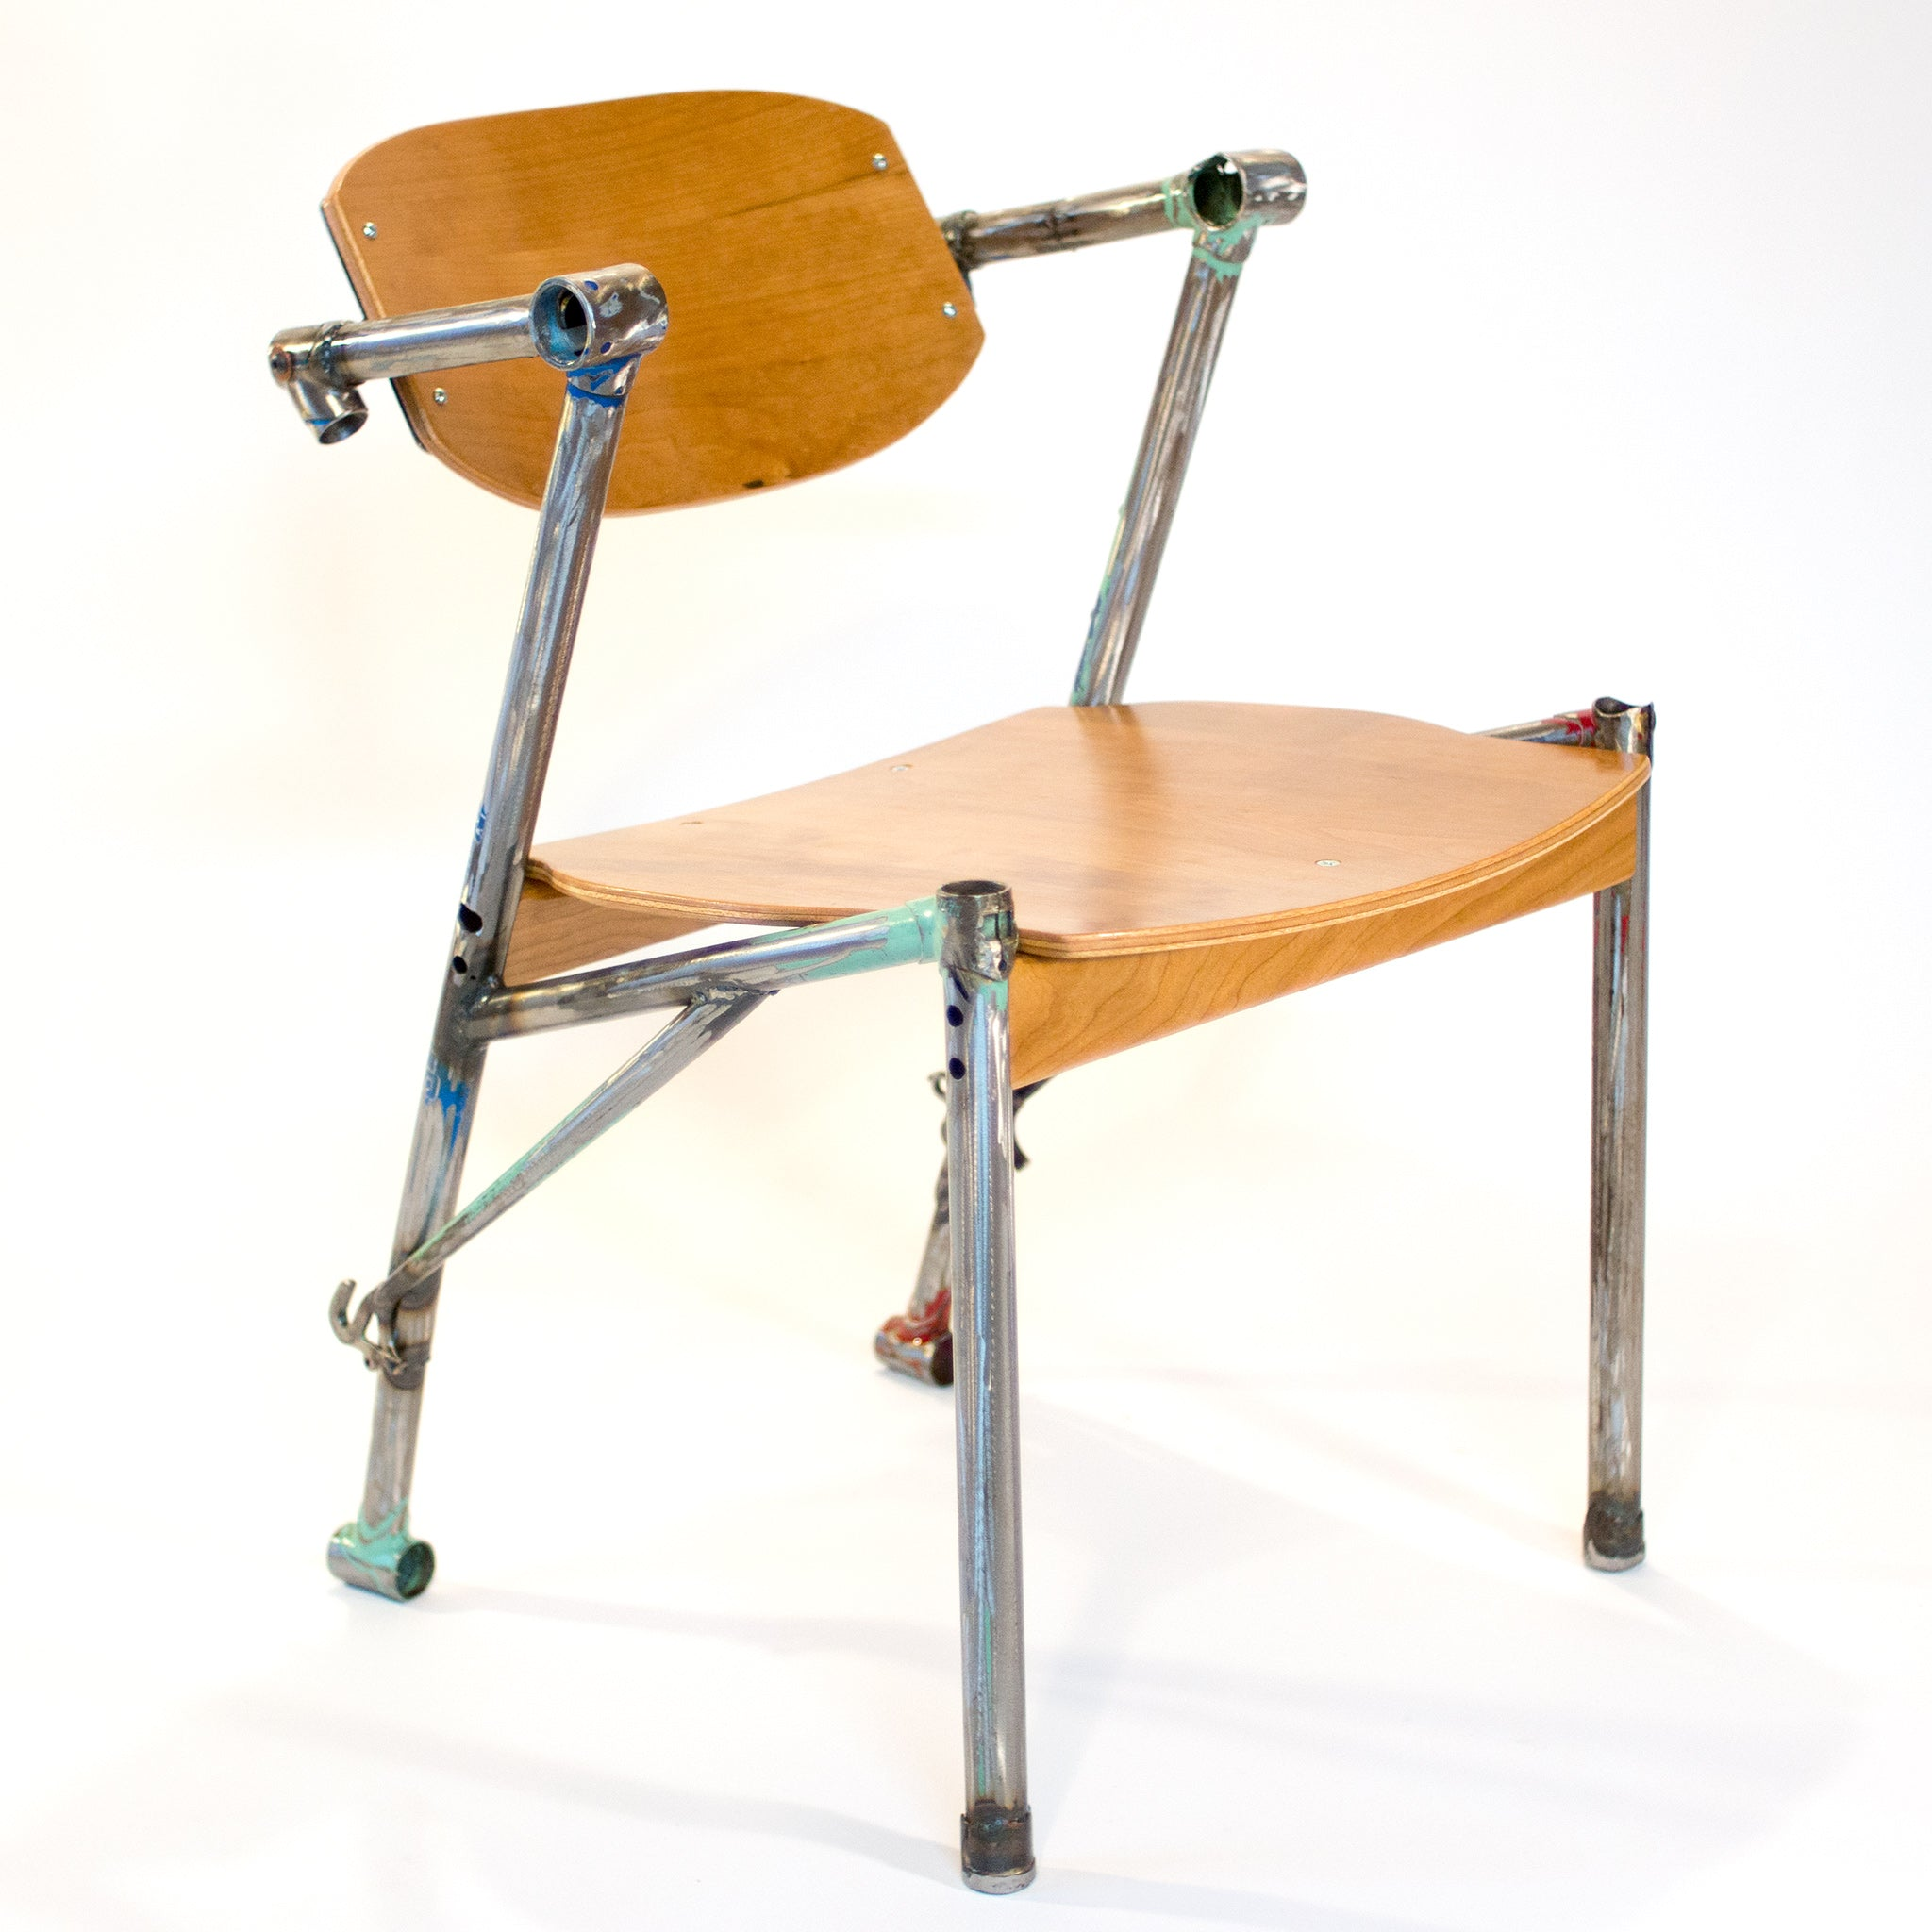 ... Eric Blanpied Furniture   Bike Z Chair, Bicycle Frames And Bent Plywood  ...